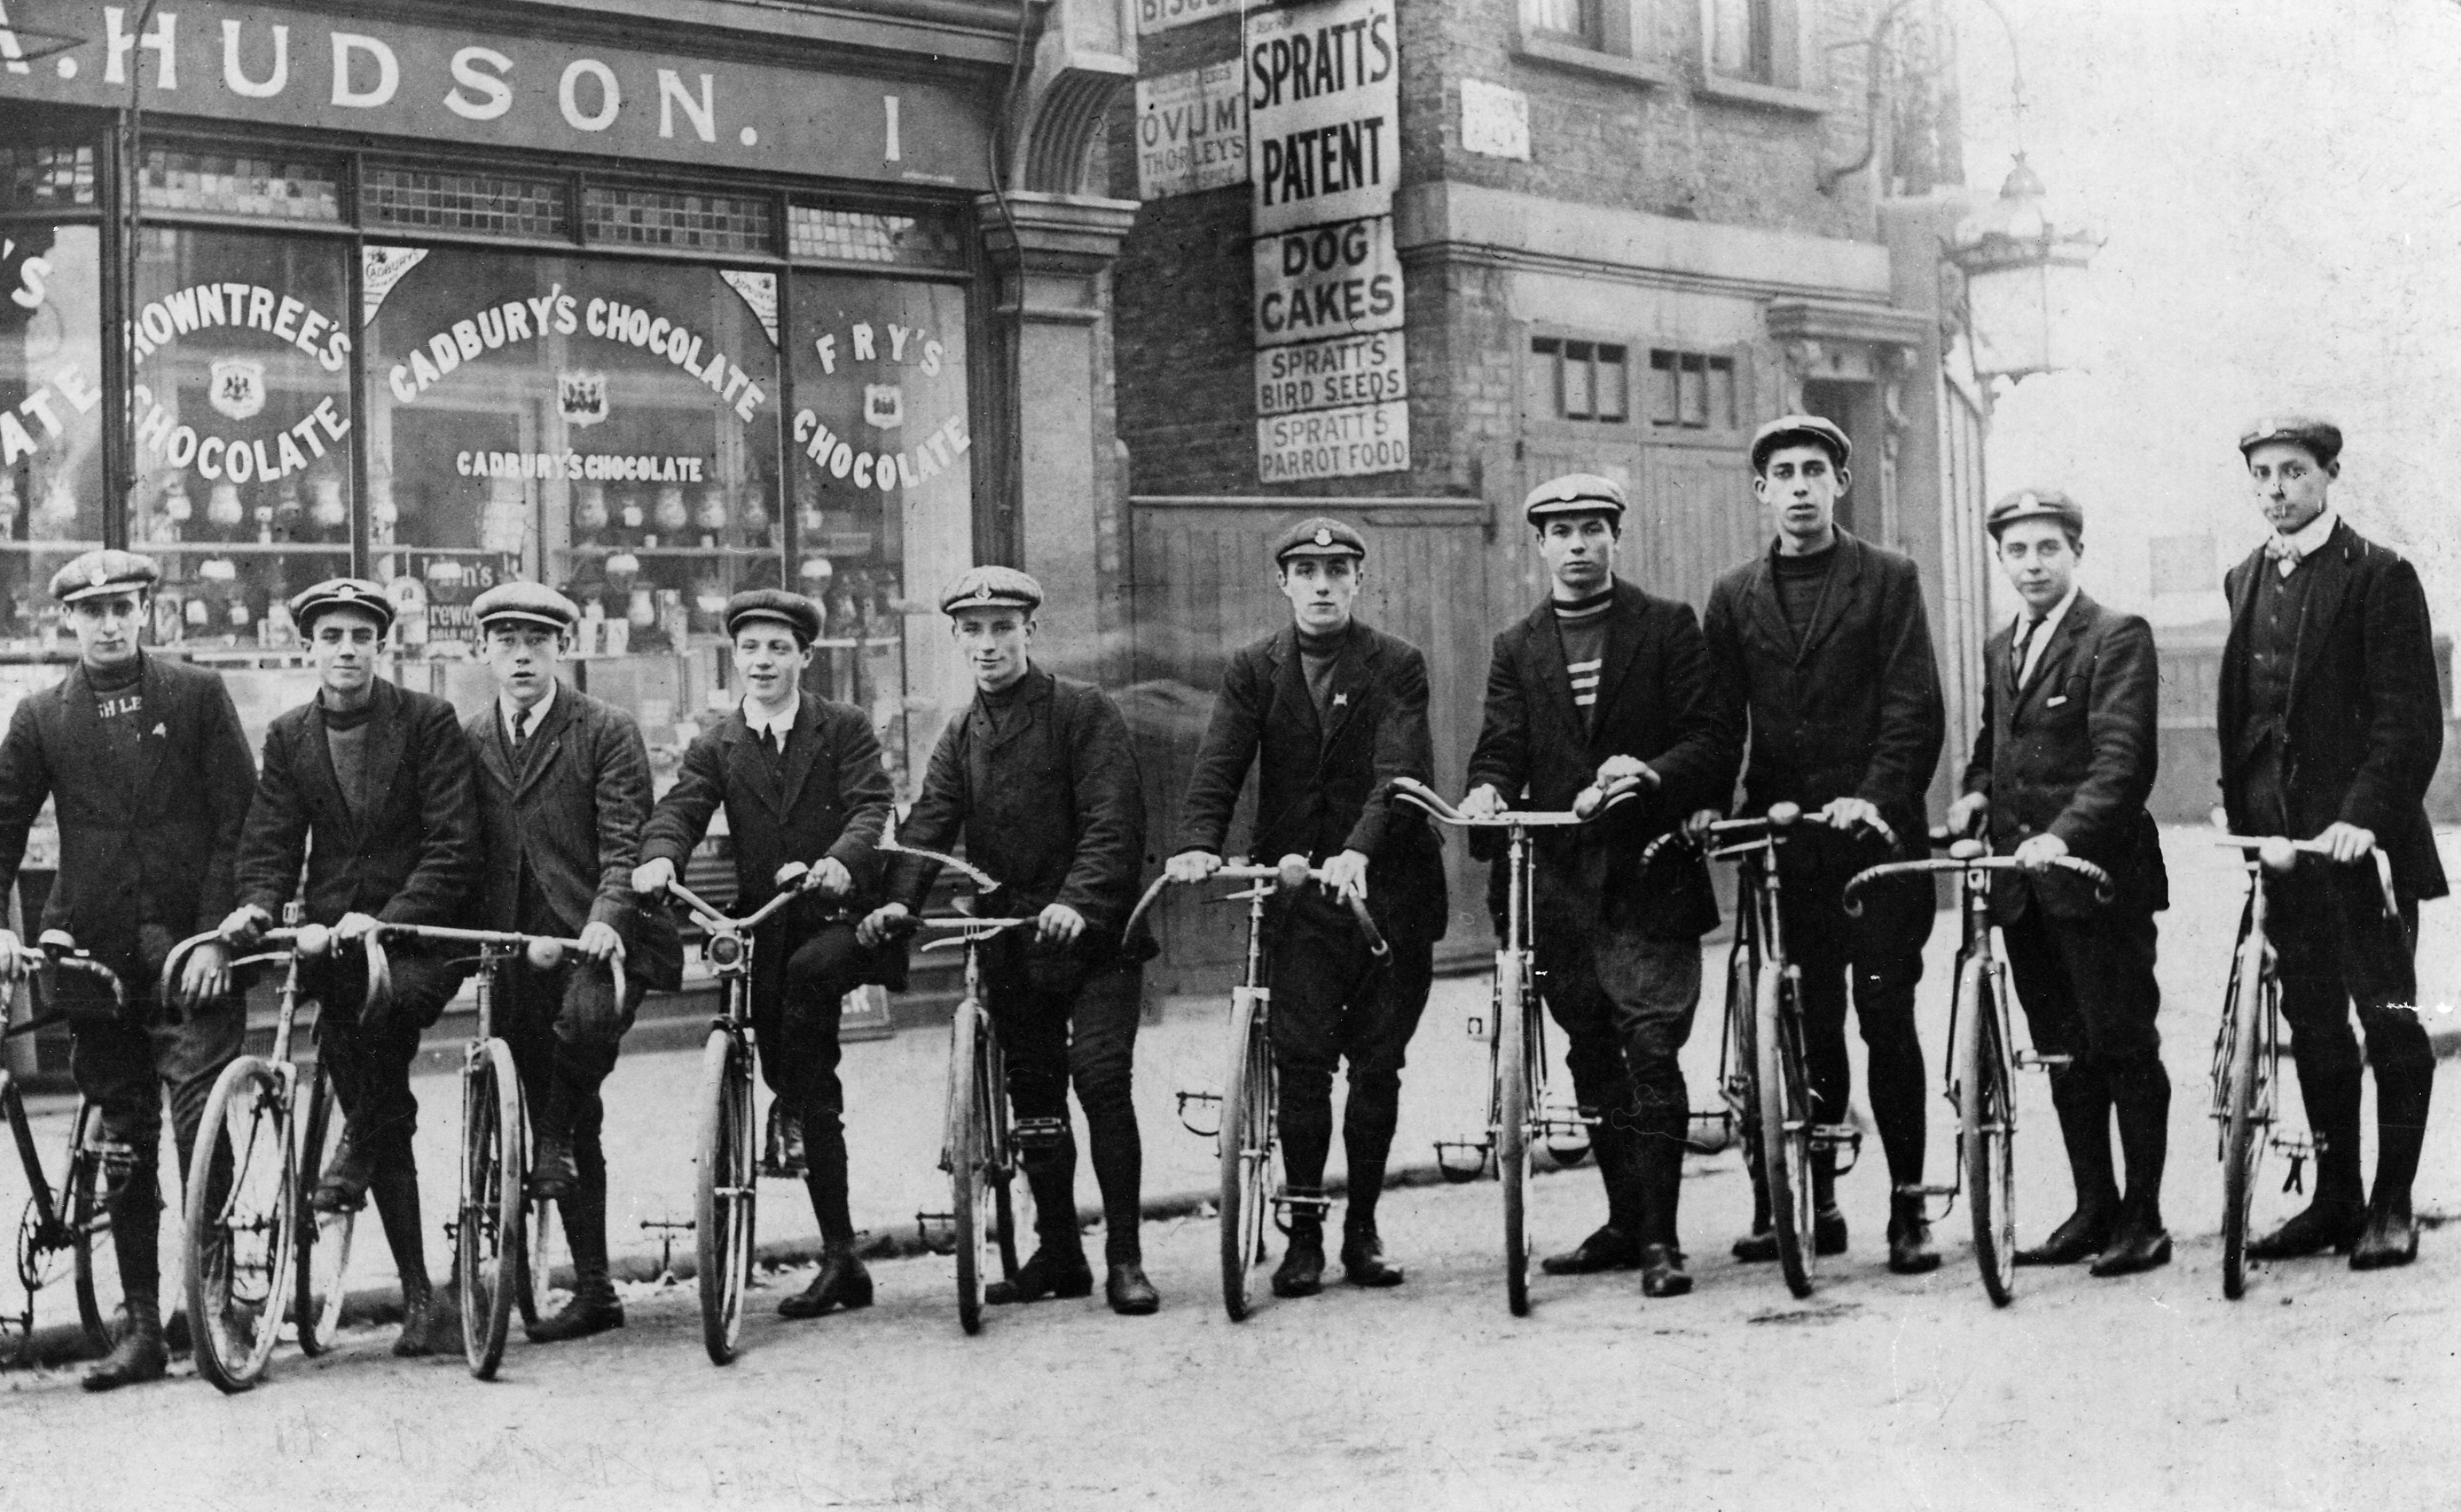 Hazellville Road Cycling Club (c1909) - Used with permission from Islington Local History Centre